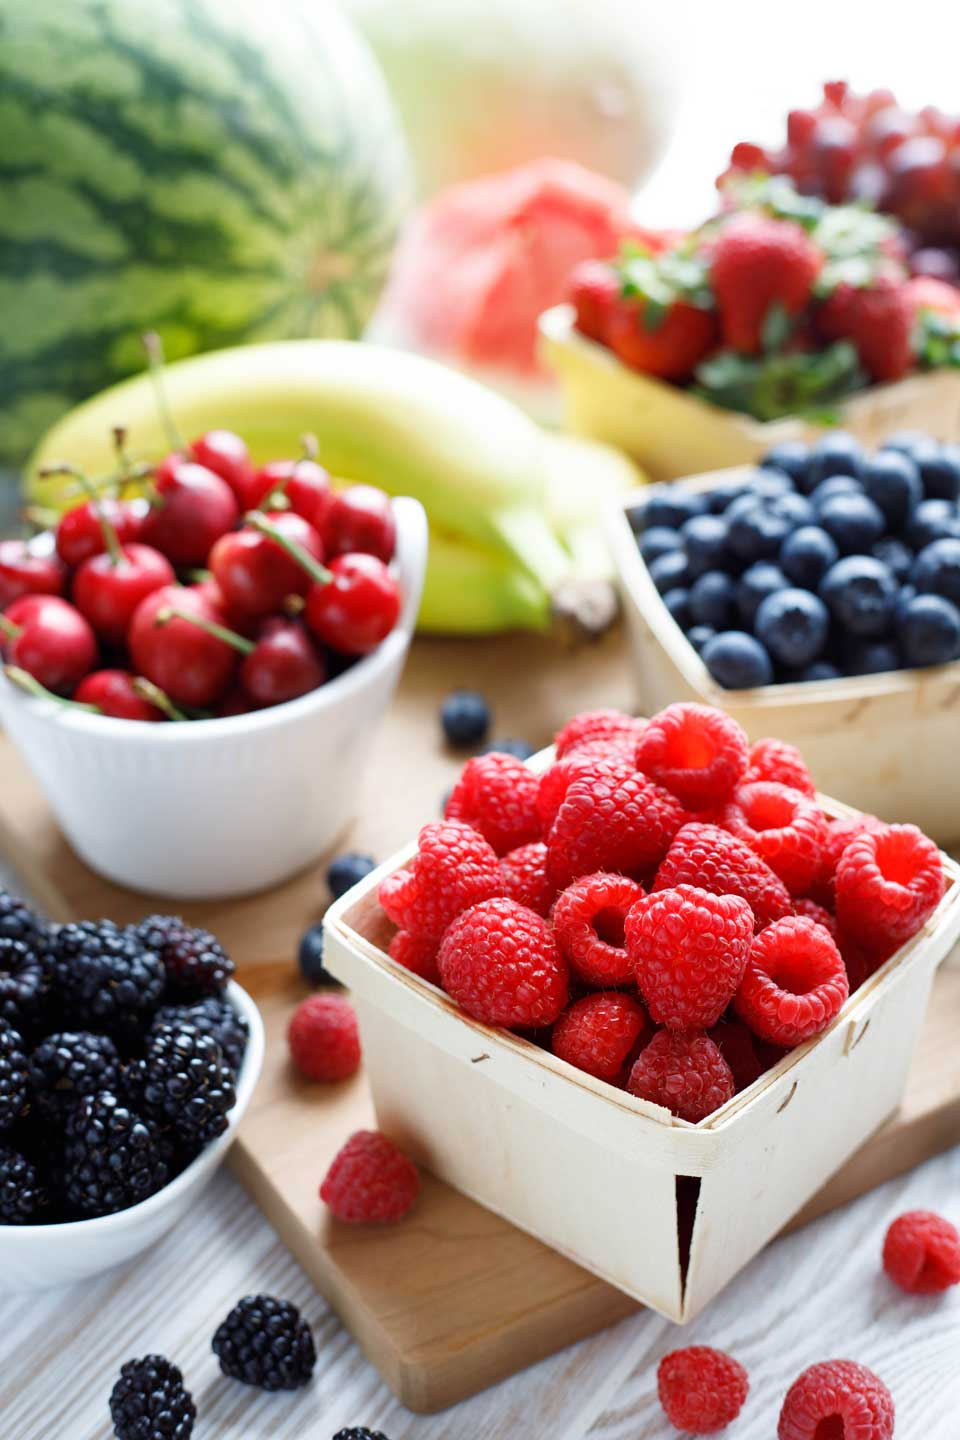 Fresh fruits arranged in little baskets and bowls, including raspberries, blueberries, blackberries, cherries and strawberries